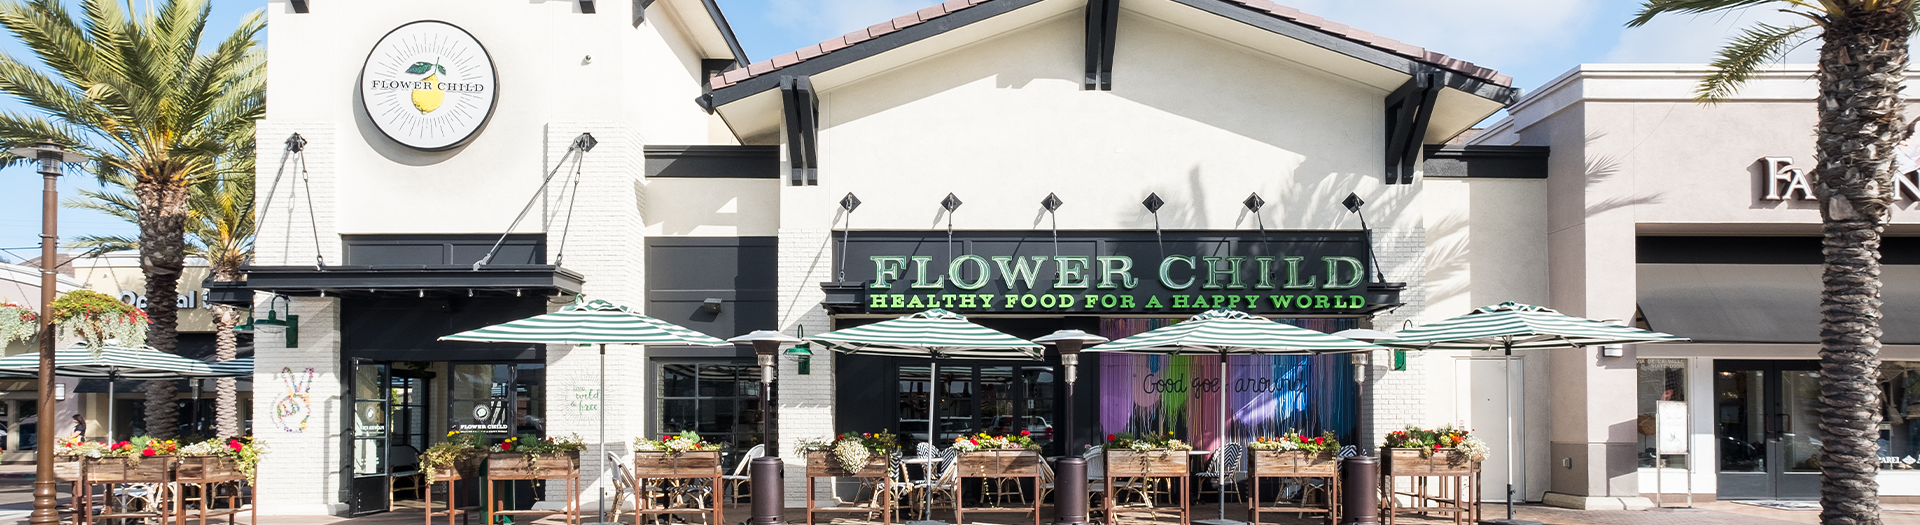 Flower Child – Del Mar - Del Mar, CA